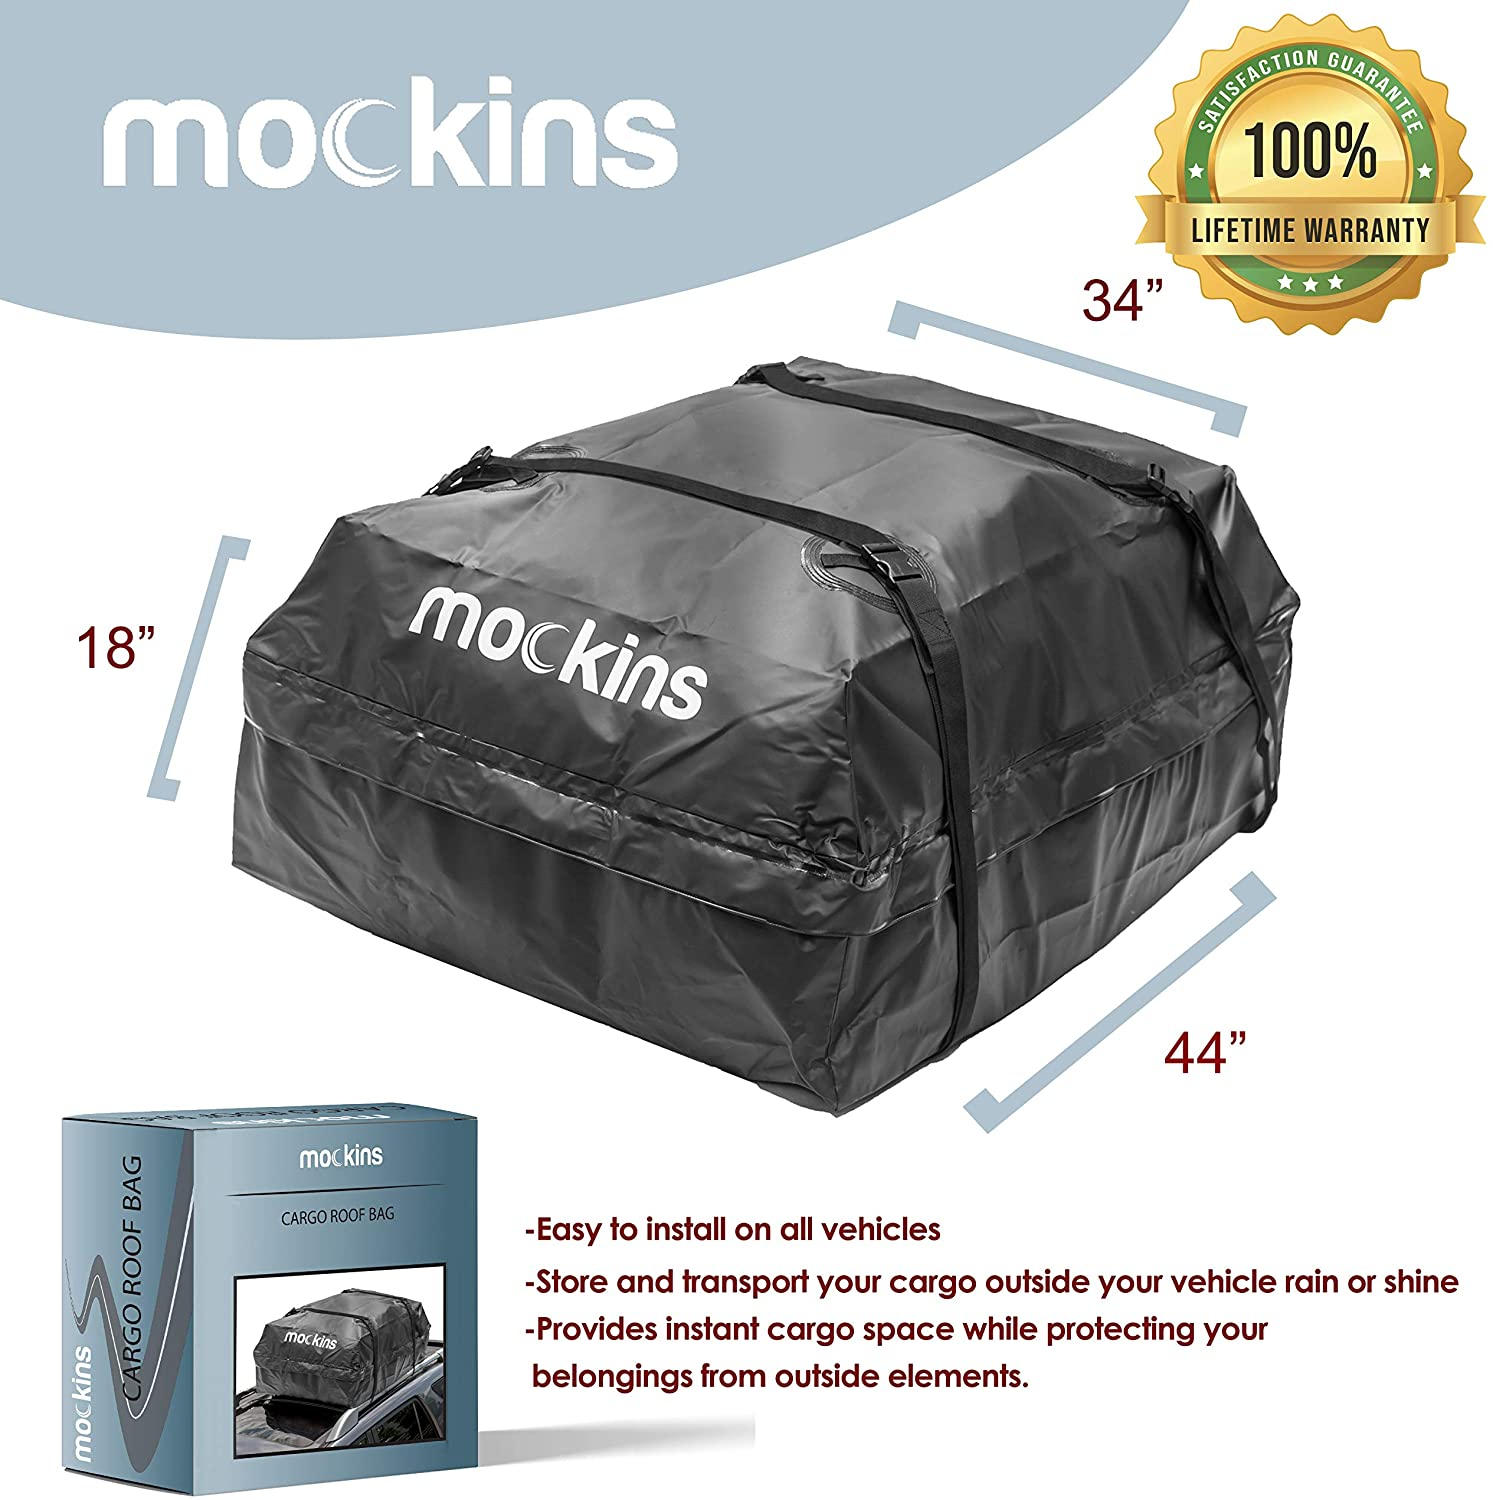 Mockins Heavy Duty Vehicle Cargo Roof Bag, Abrasion Resistant, Waterproof - 15 Cu.ft. Capacity (MARB31)